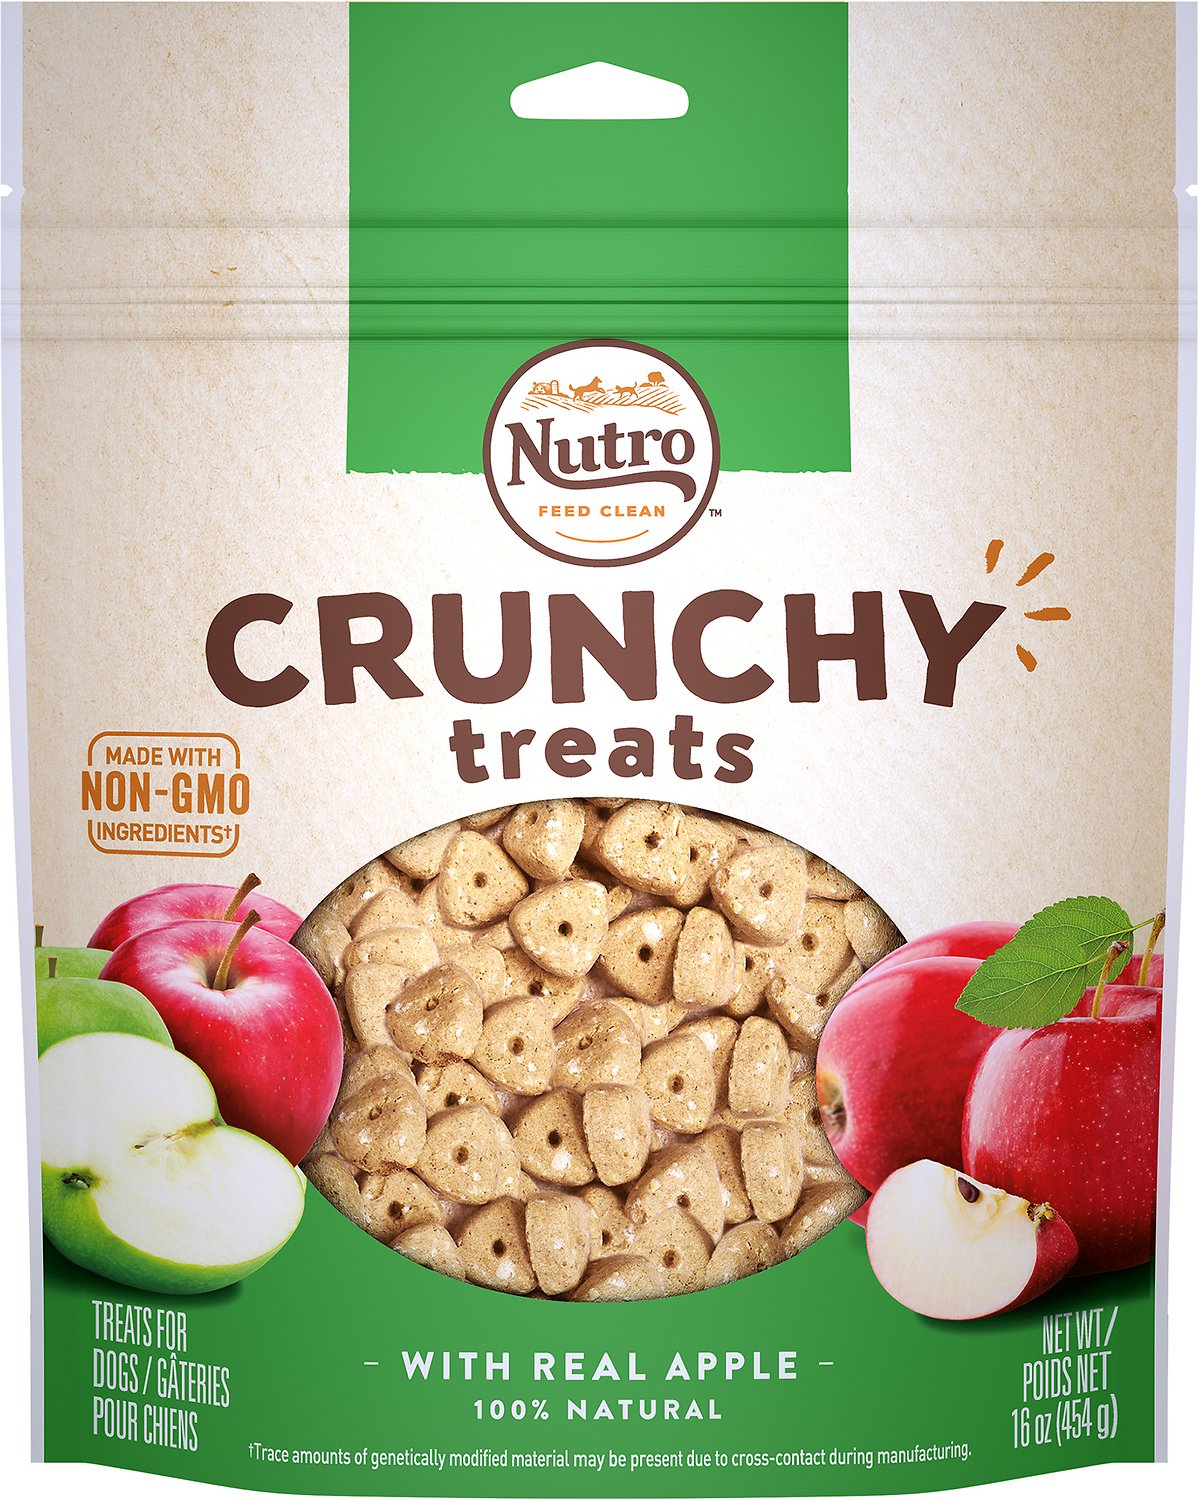 Nutro Crunchy with Real Apple Dog Treats Image